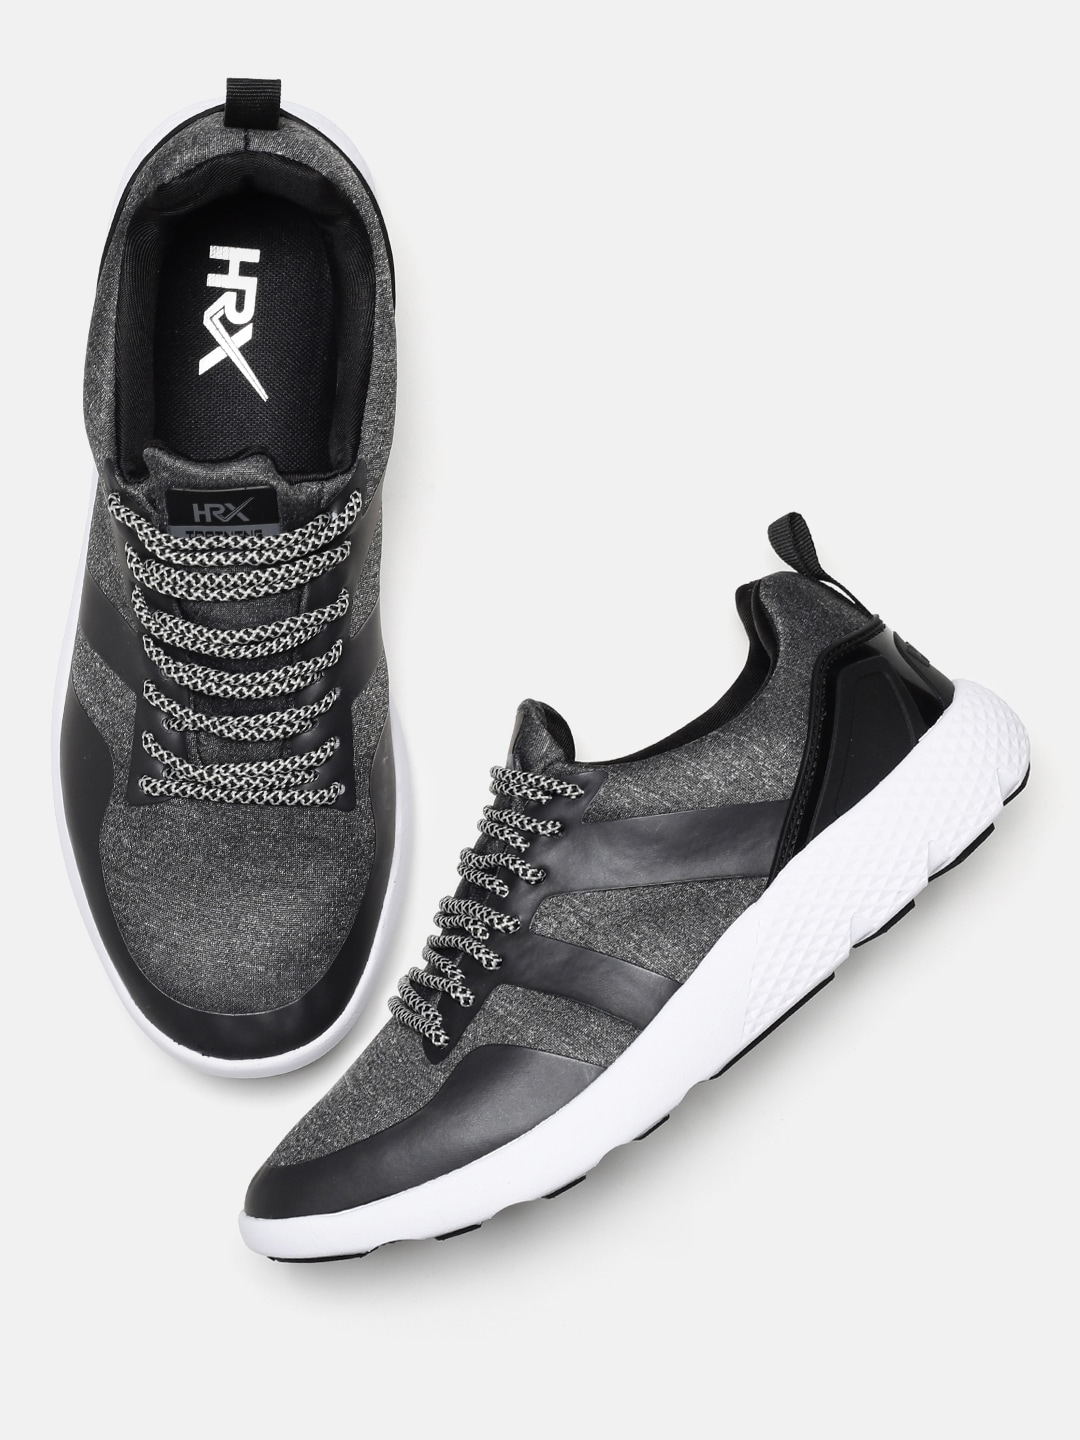 Men Charcoal Shoes Grey 2 Hrithik Or Gym Training By Blackamp; Hrx Roshan Rage BrCtsQdxh